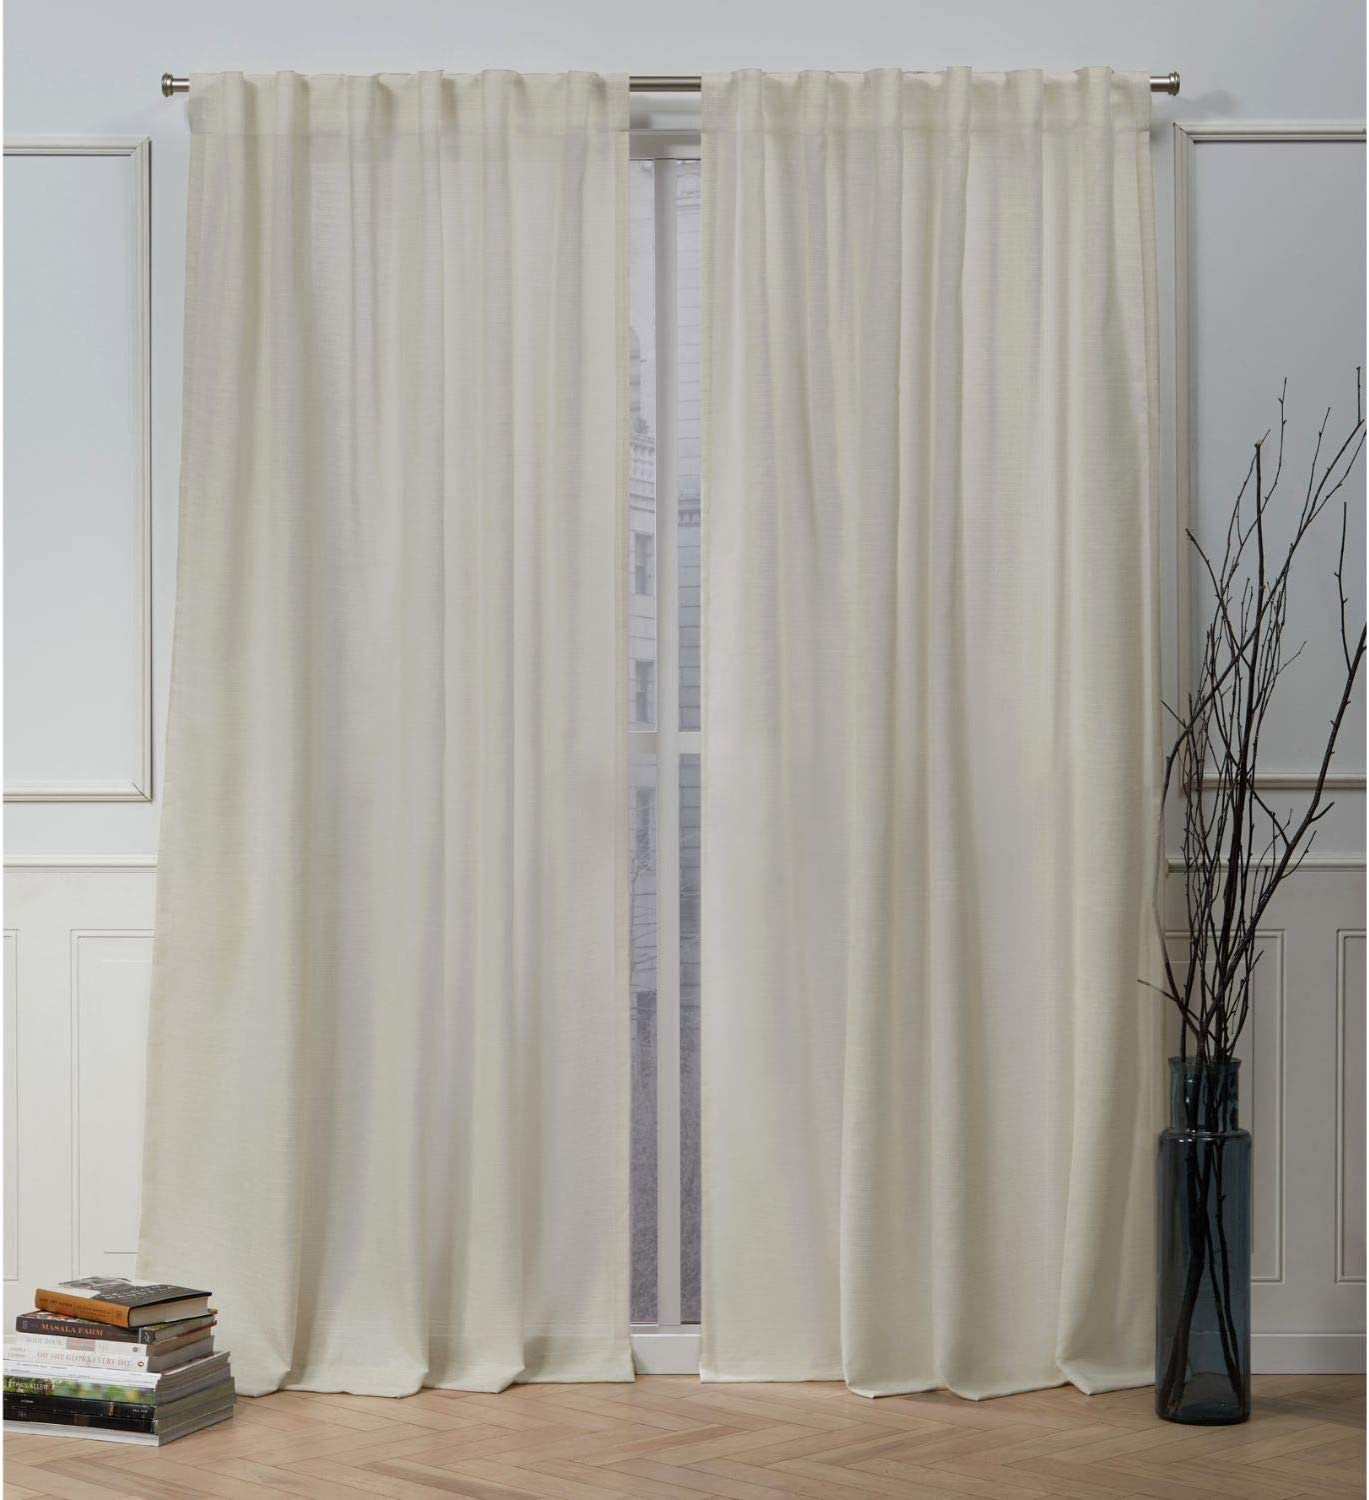 Nicole Miller Faux Linen Slub Hidden Tab Top Curtain Panel, Linen, 54x96, 2 Piece